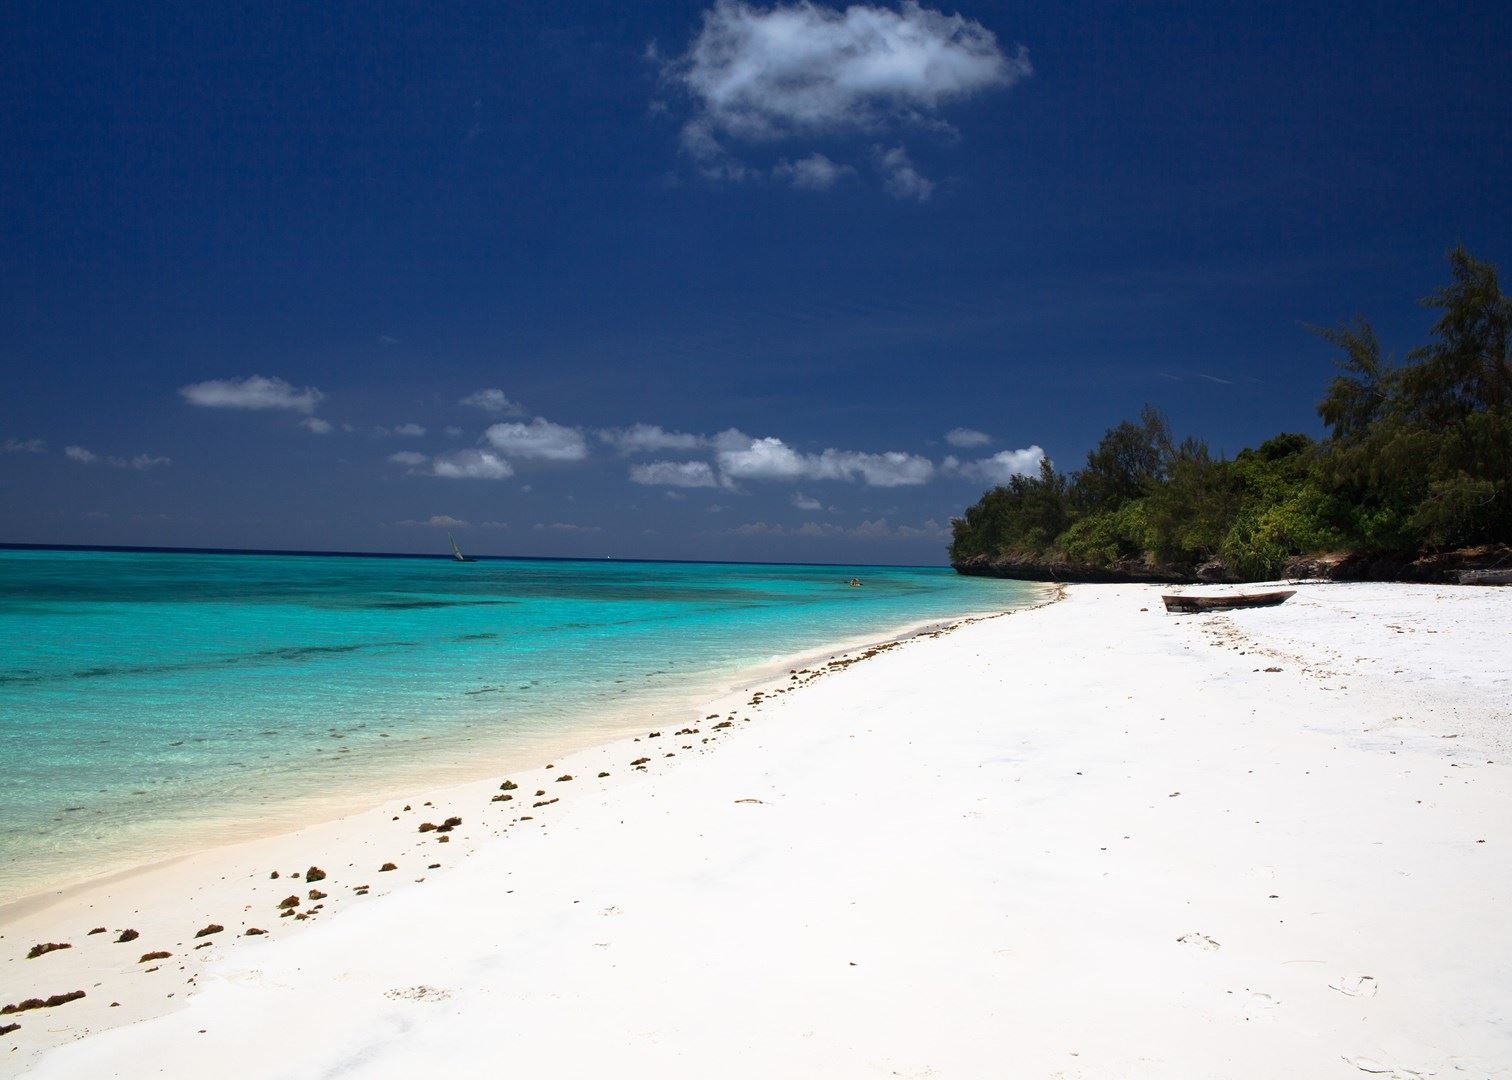 Pemba Island is part of the Zanzibar archipelago